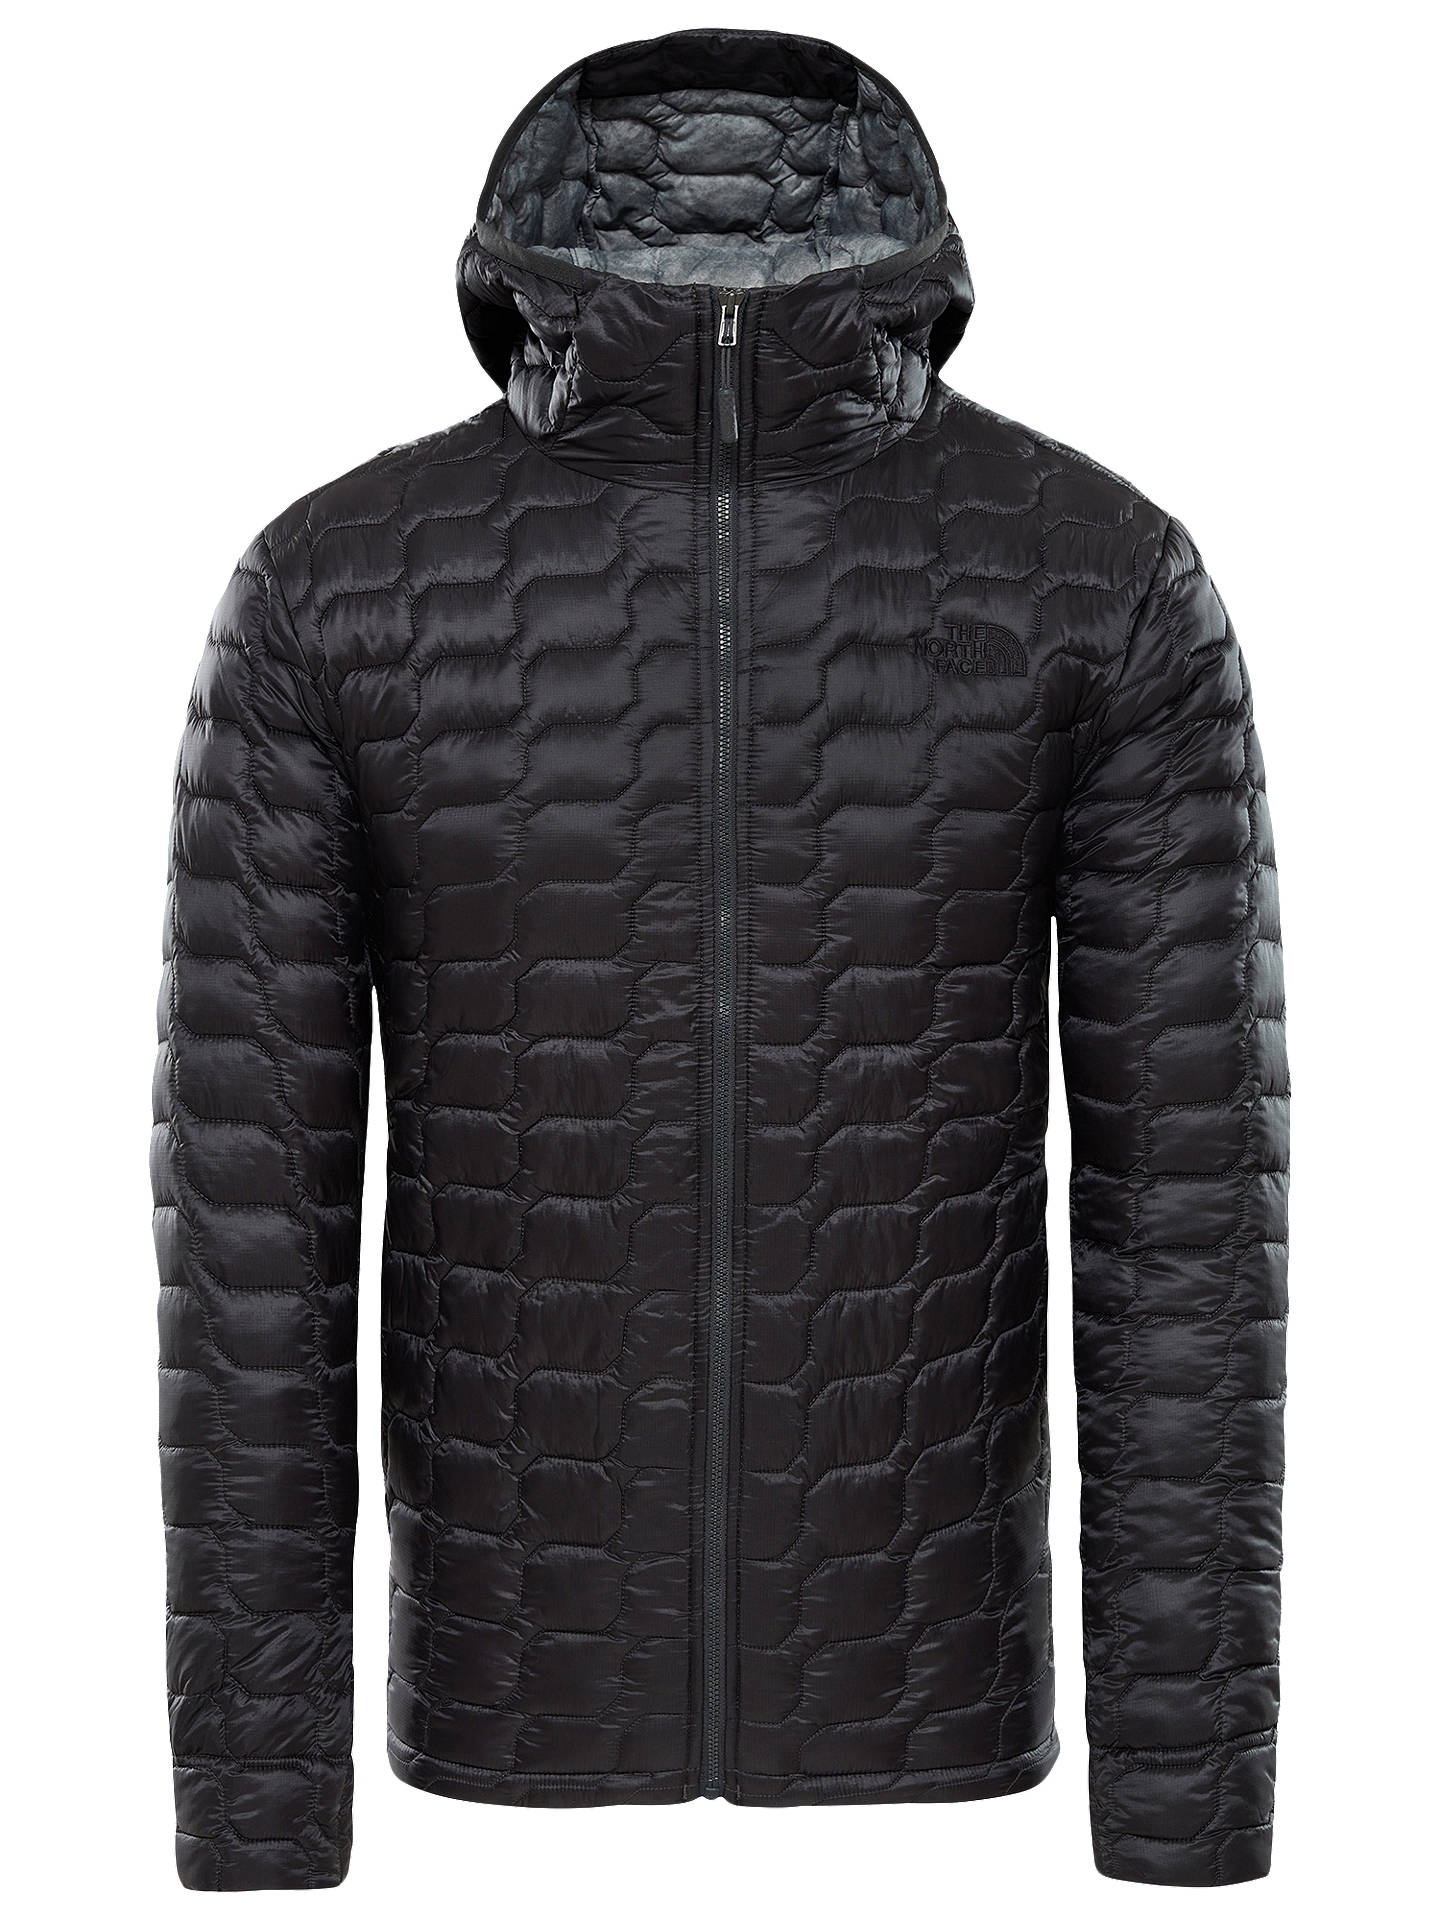 3efab1e9a70f Buy The North Face Thermoball Full-Zip Men s Insulated Jacket